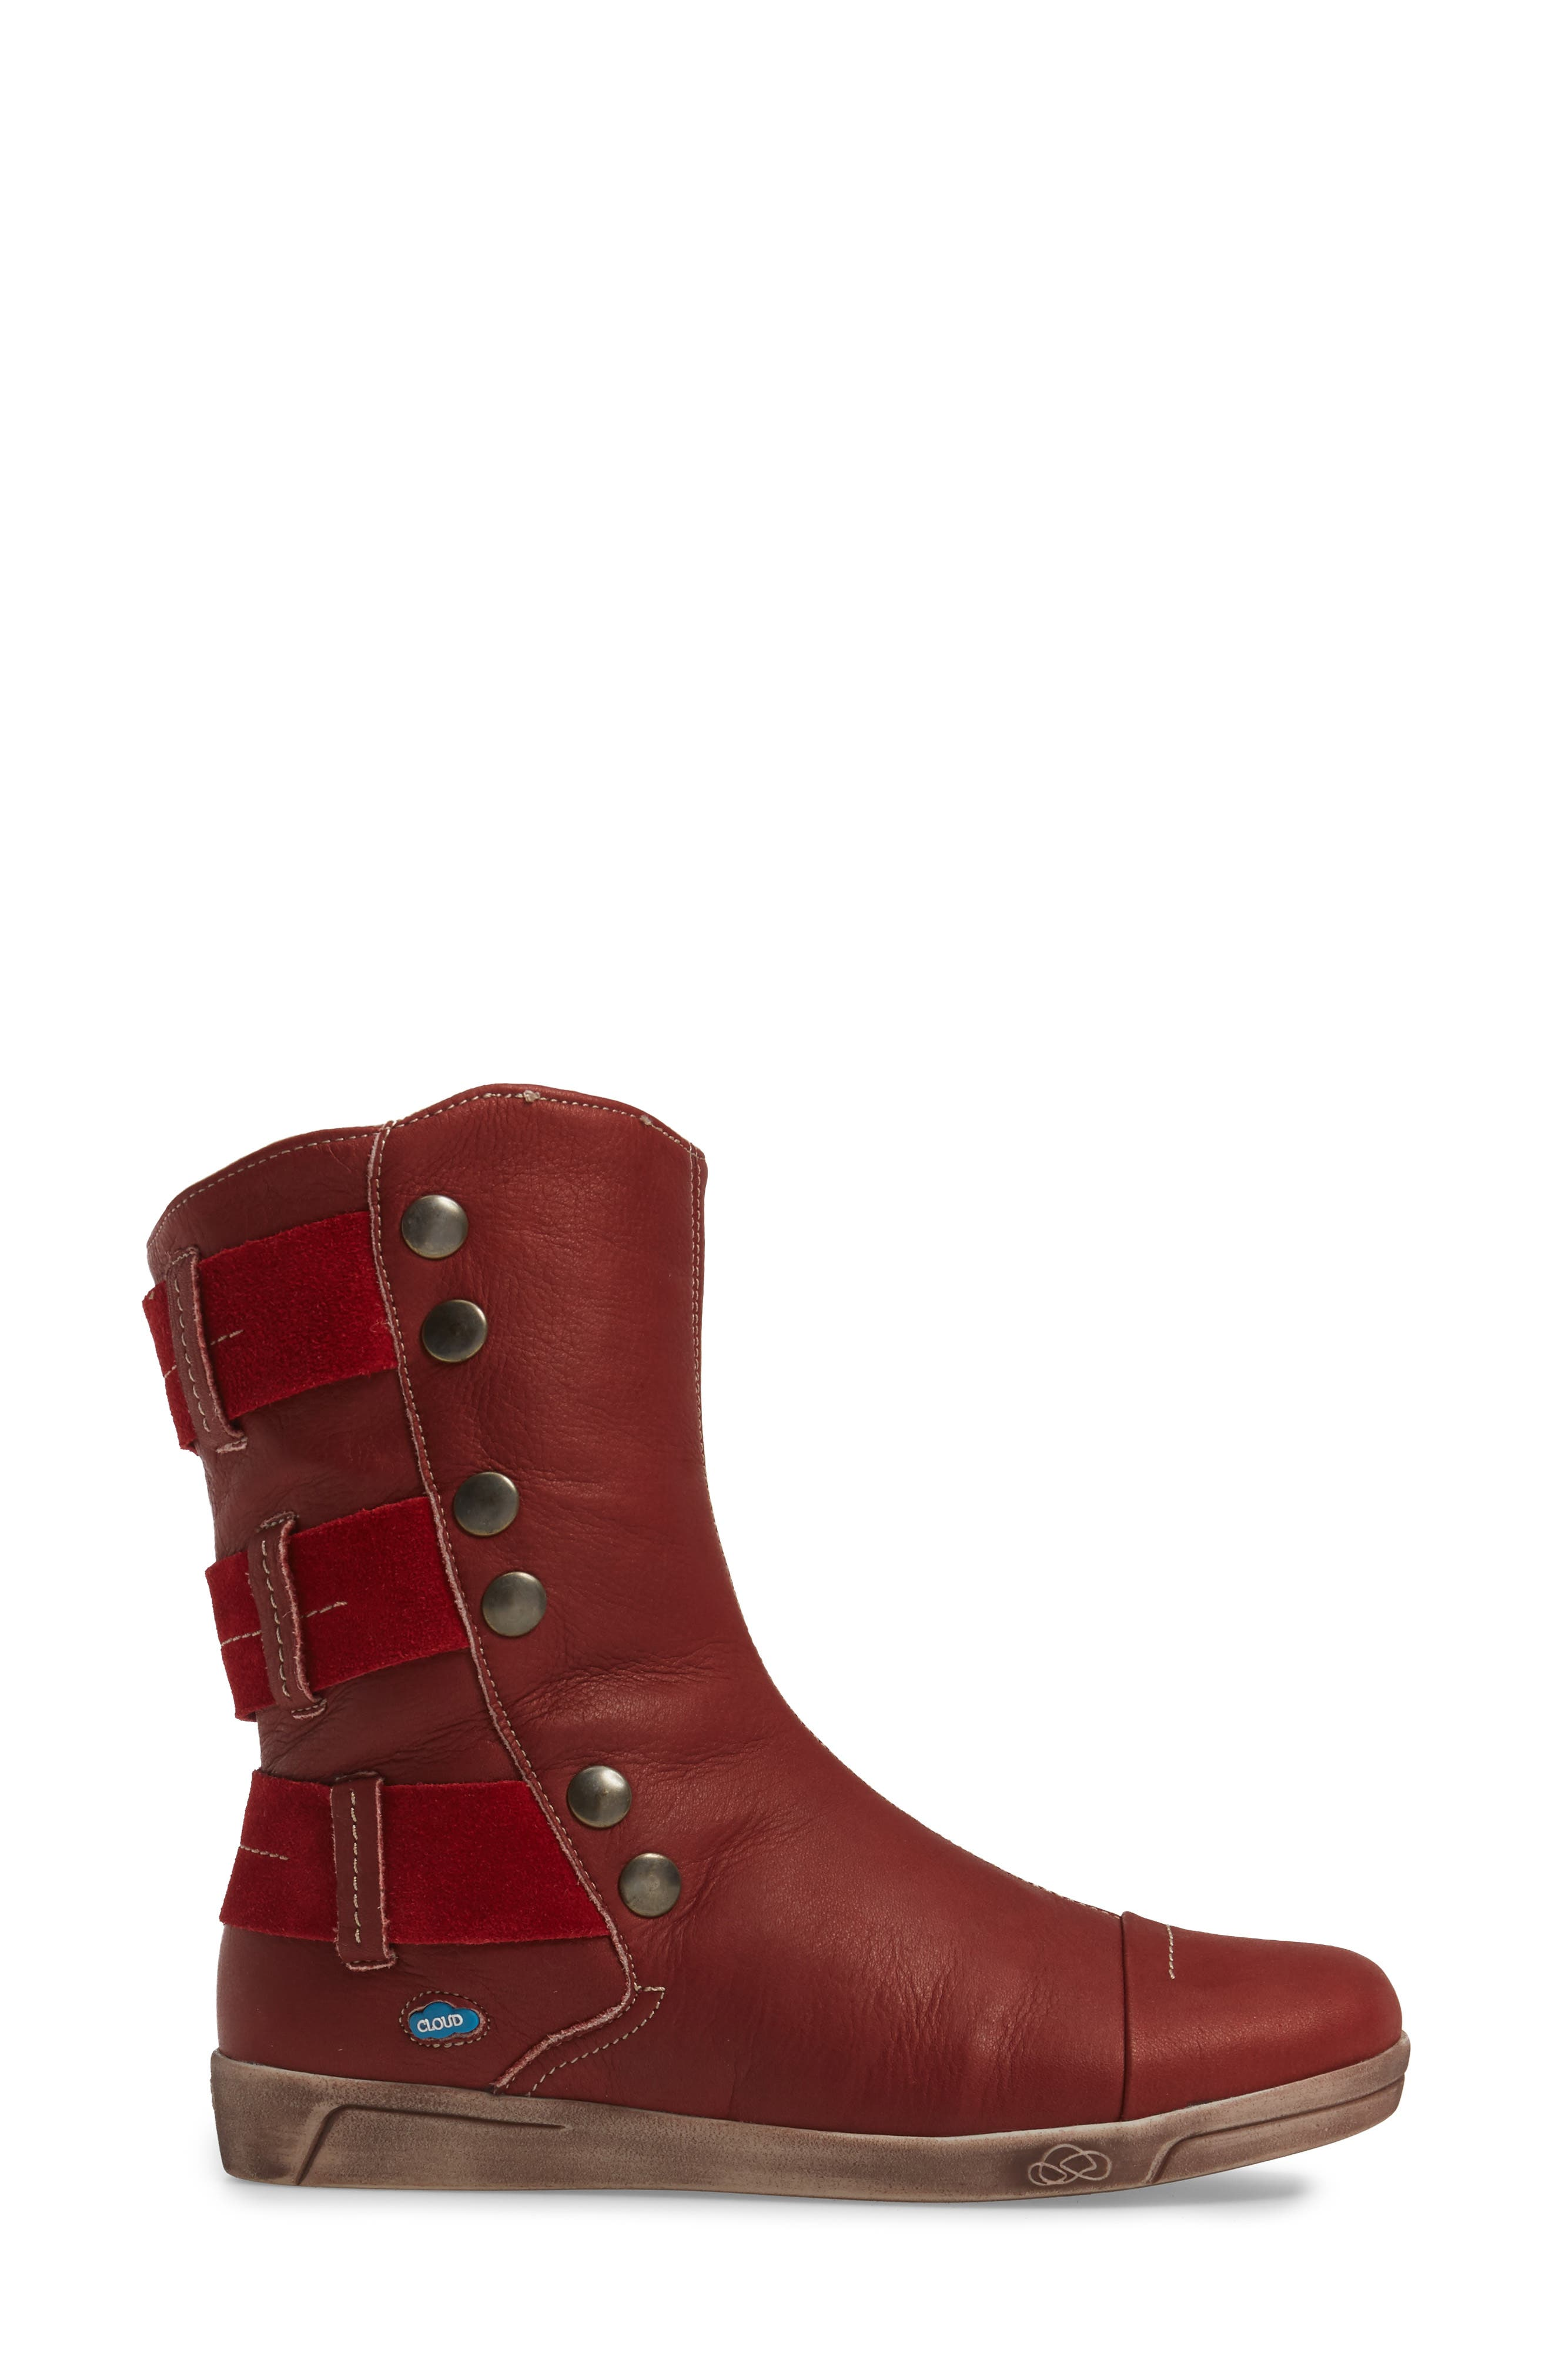 Amber Wool Lined Bootie,                             Alternate thumbnail 3, color,                             Red Leather